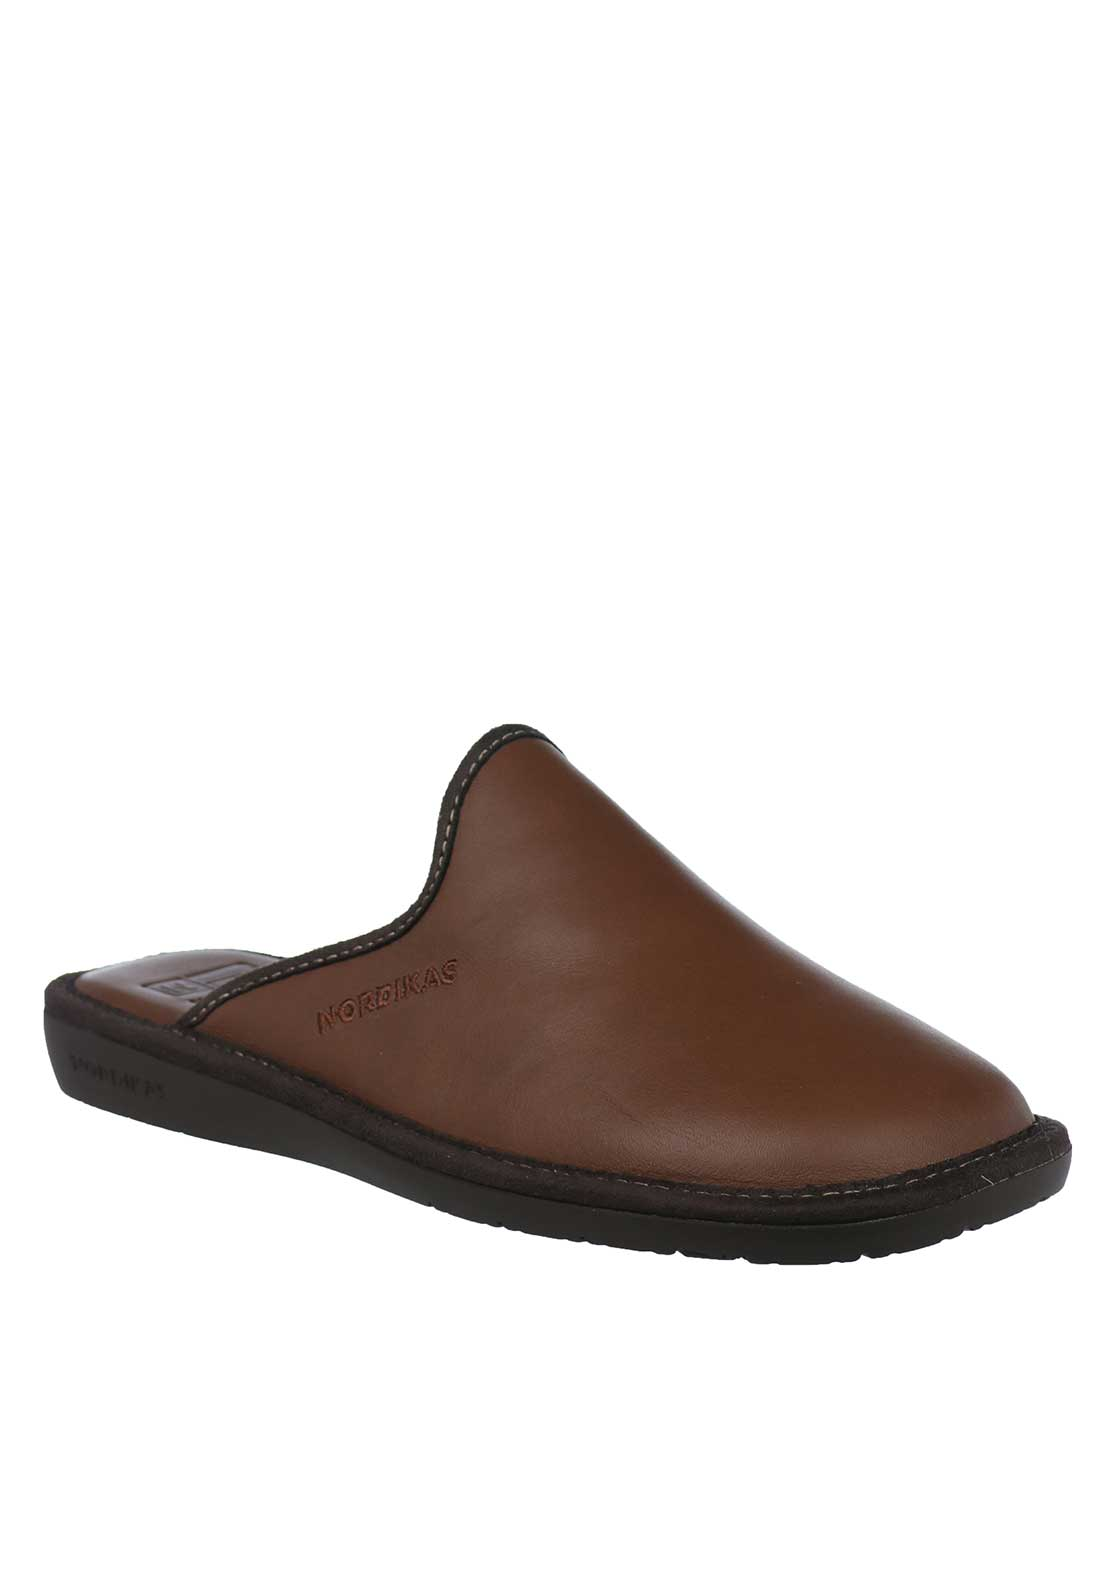 Nordika Mens Ohio Leather Slippers, Brown